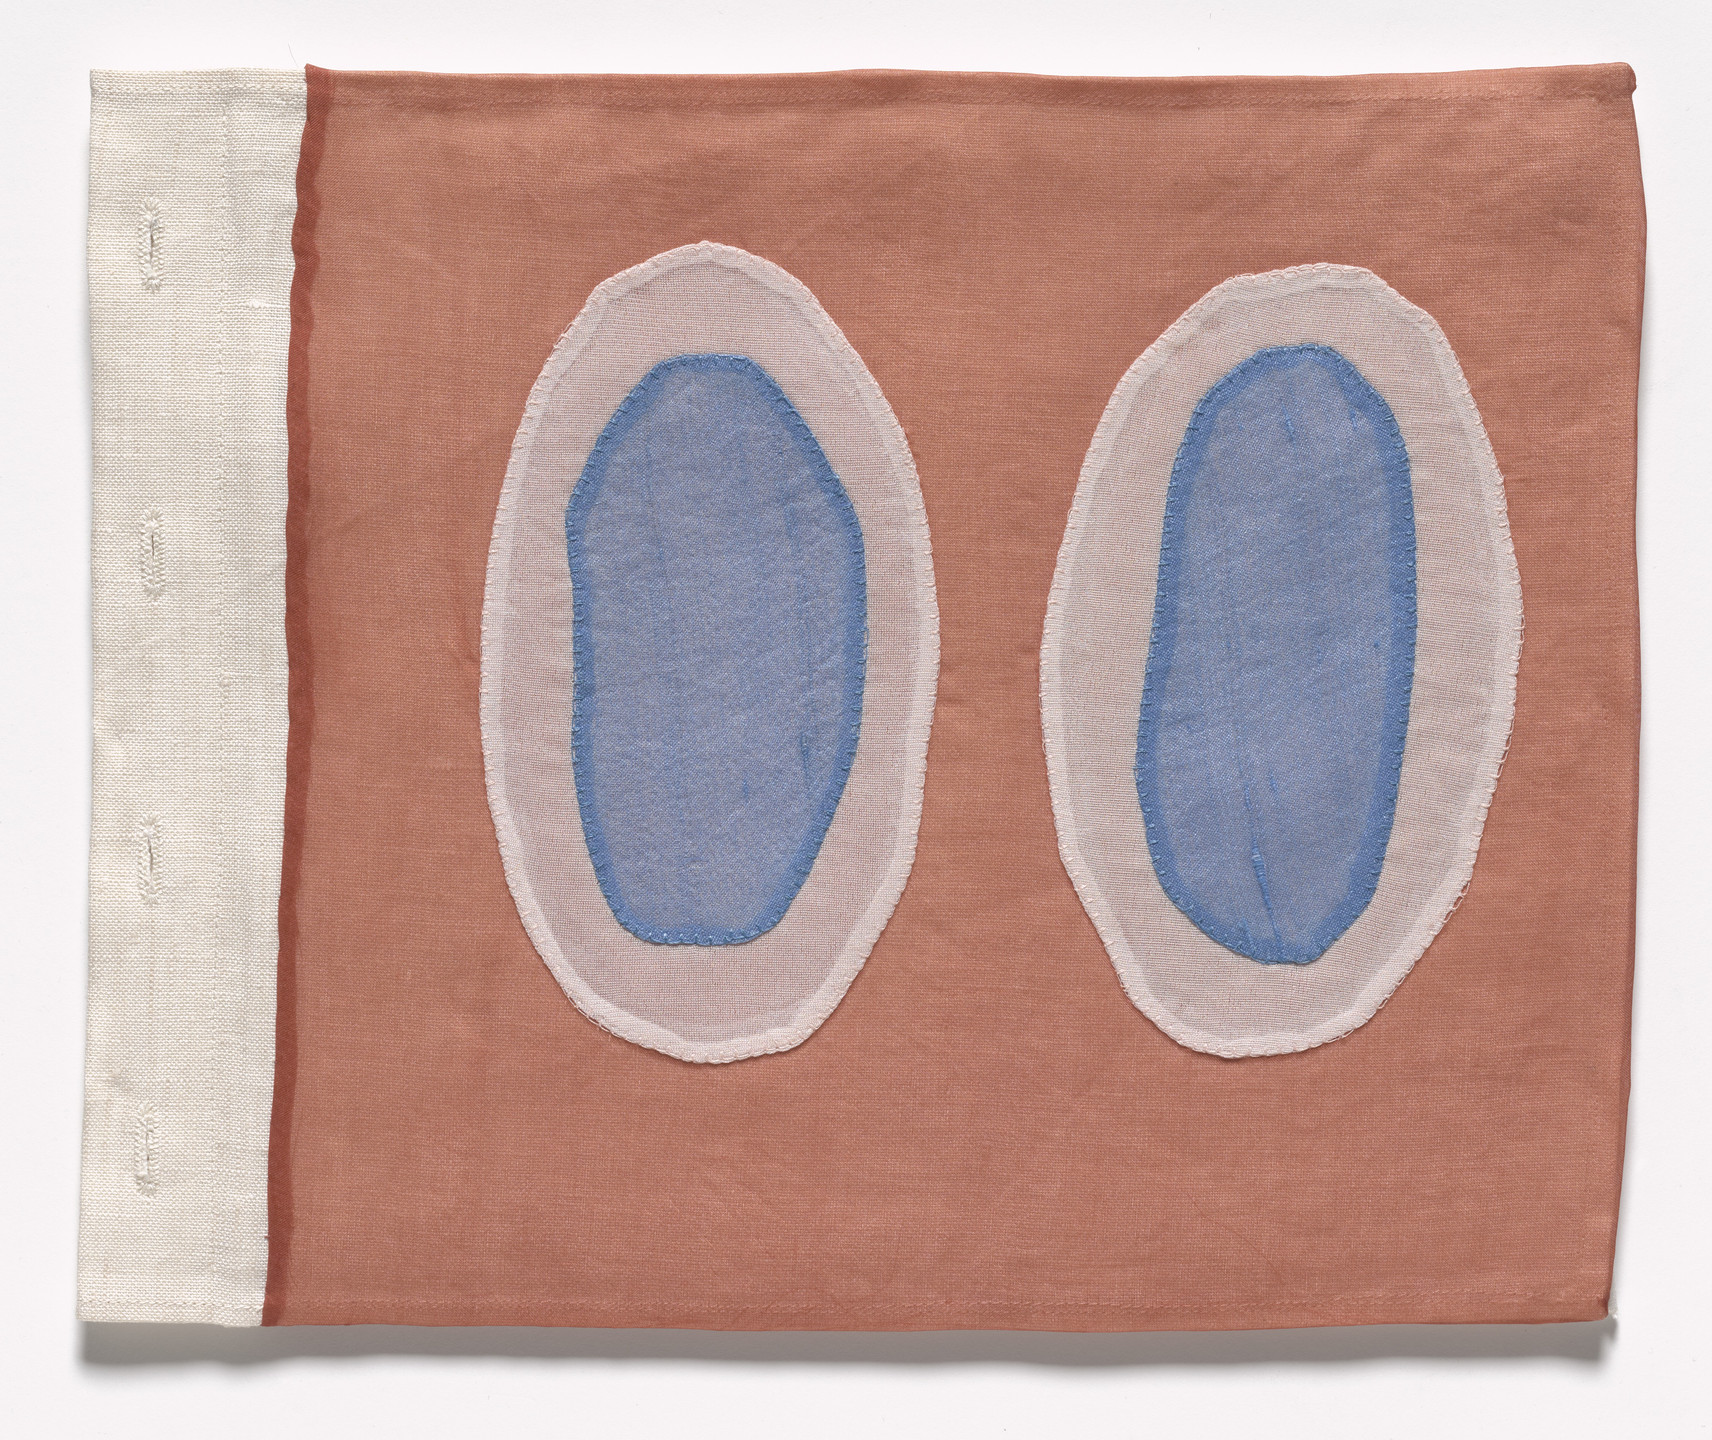 Louise Bourgeois. Untitled, no. 27 of 34, from the illustrated book, Ode à l'Oubli. 2004